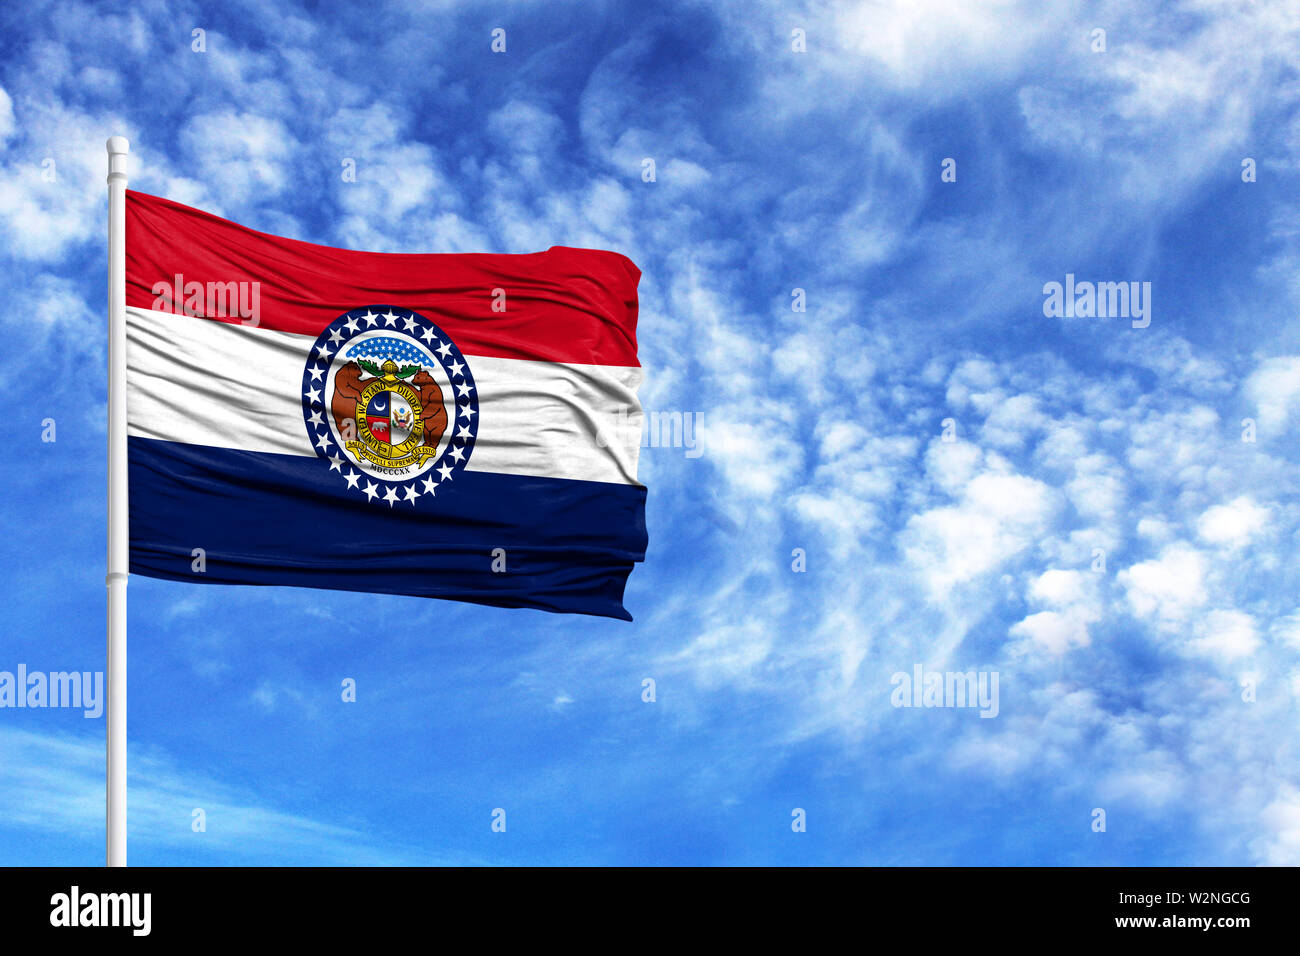 National flag State of Missouri on a flagpole in front of blue sky - Stock Image